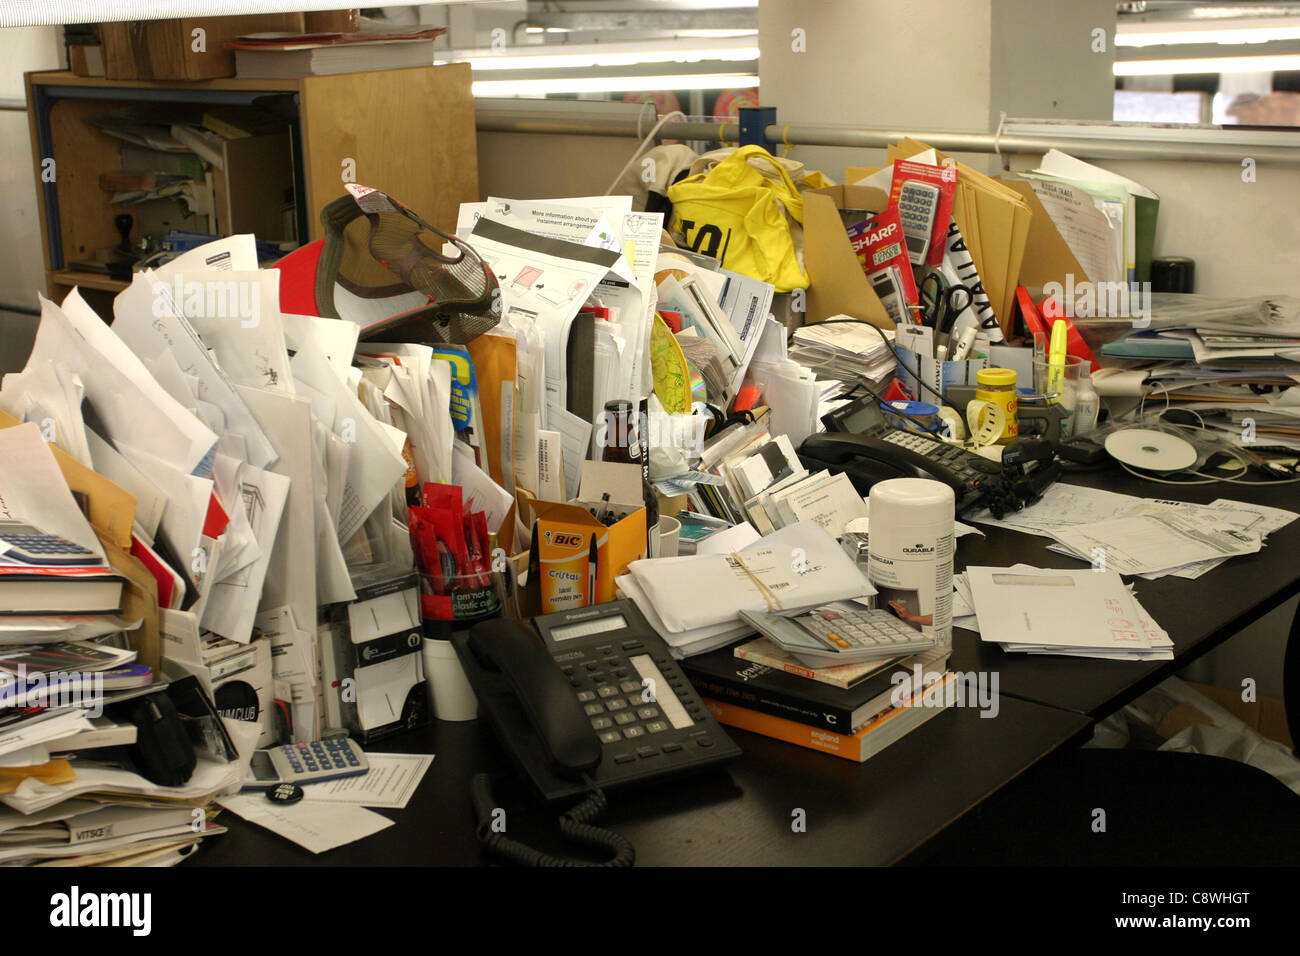 Messy Work Space - Stock Image